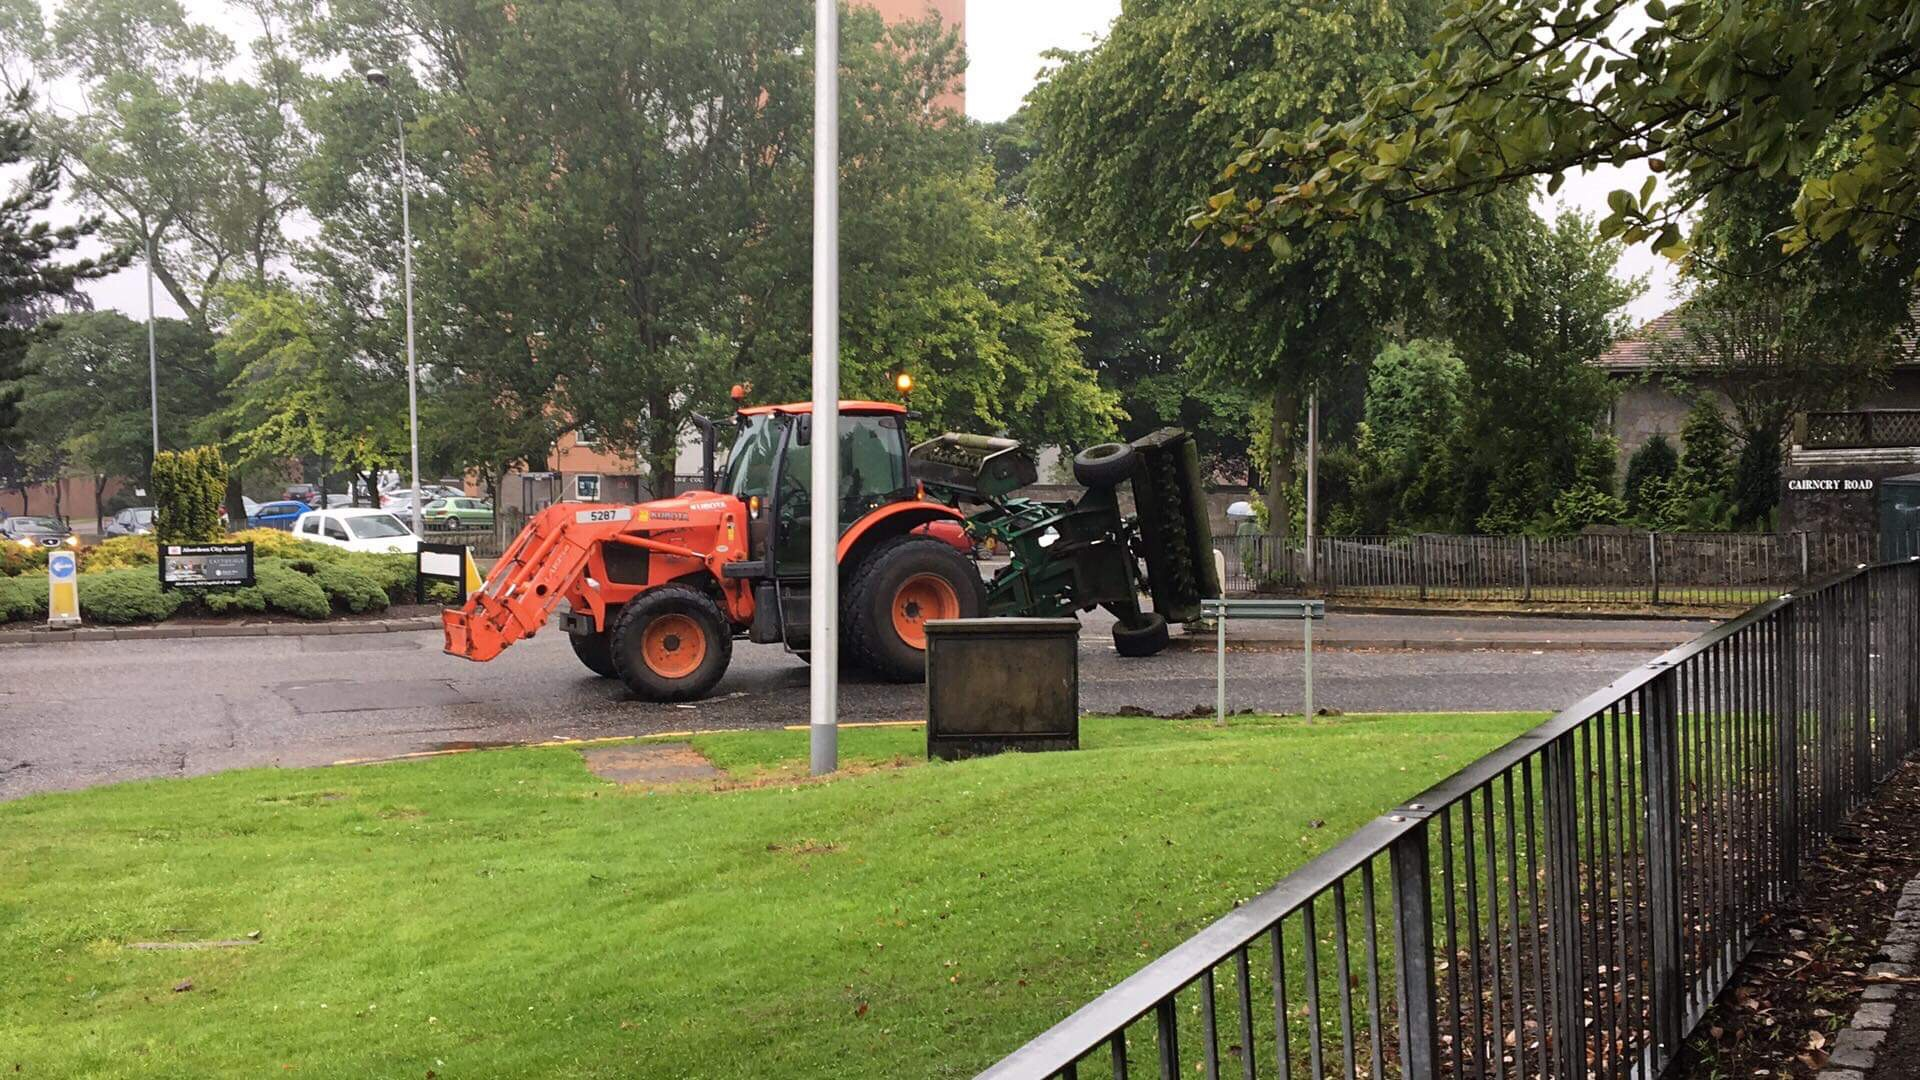 The tractor and its overturned grass cutter on Cairncry road.